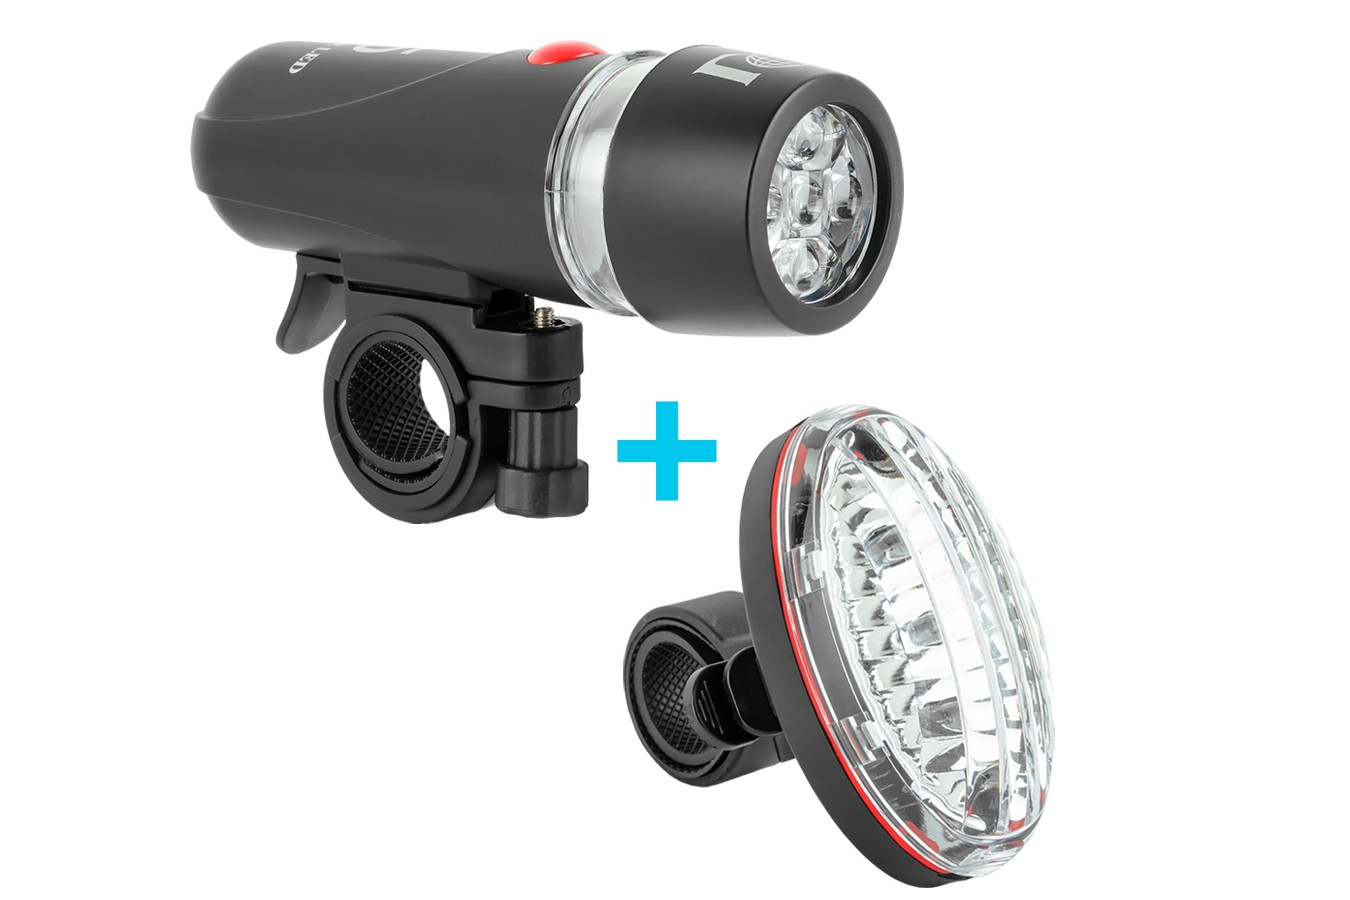 Kit Farol + Vista Light 5 LEDs Nylon LL80089 - LL